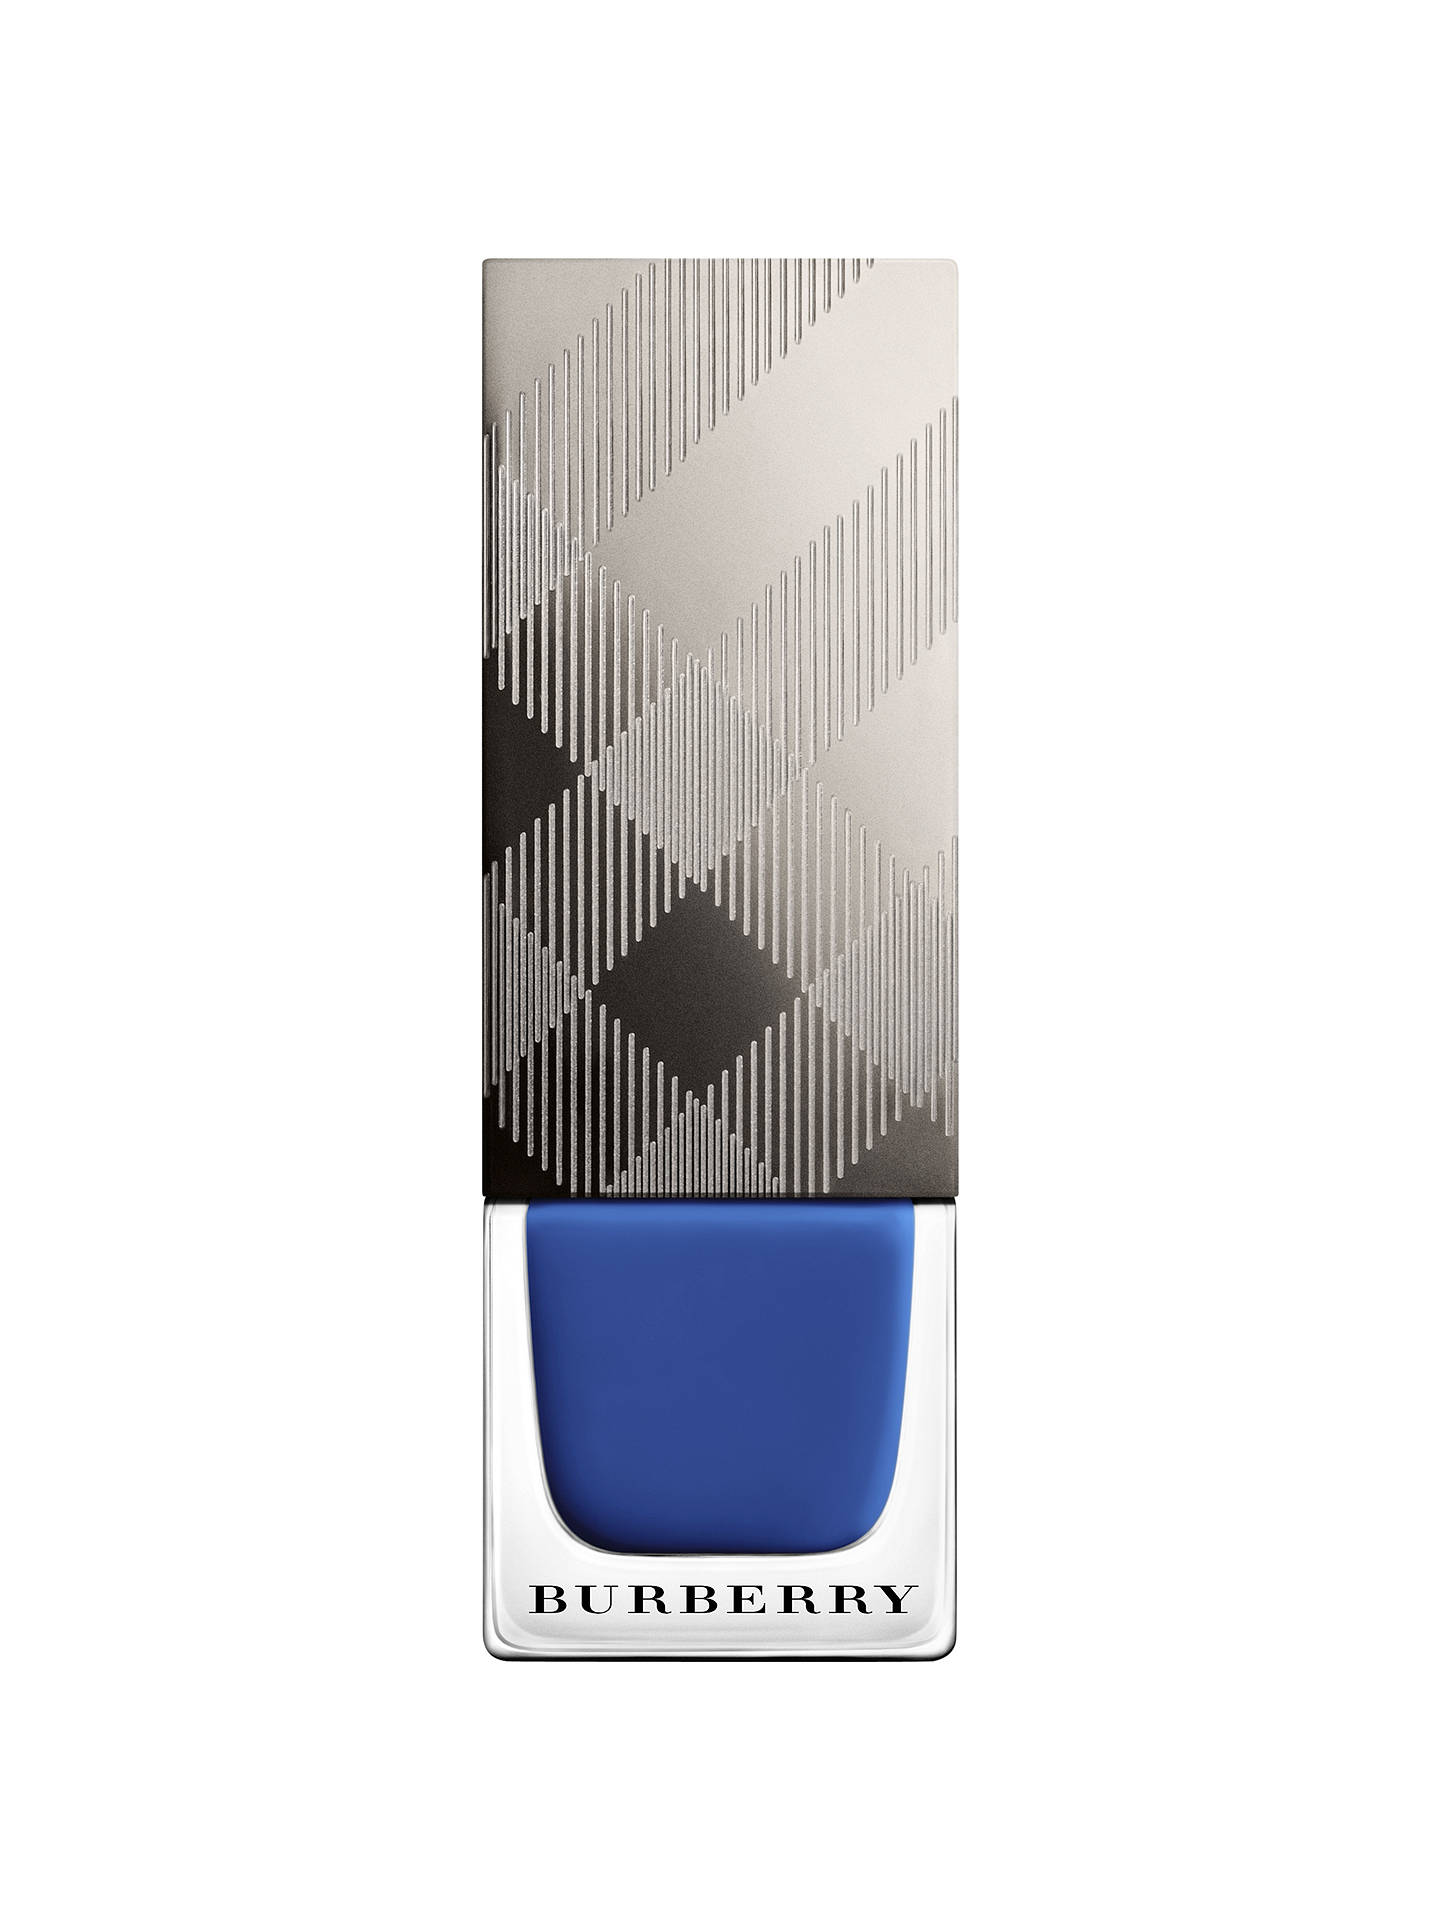 Buy Burberry Beauty Nail Polish - S/S15 Runway Collection, 429 Imperial Blue Online at johnlewis.com